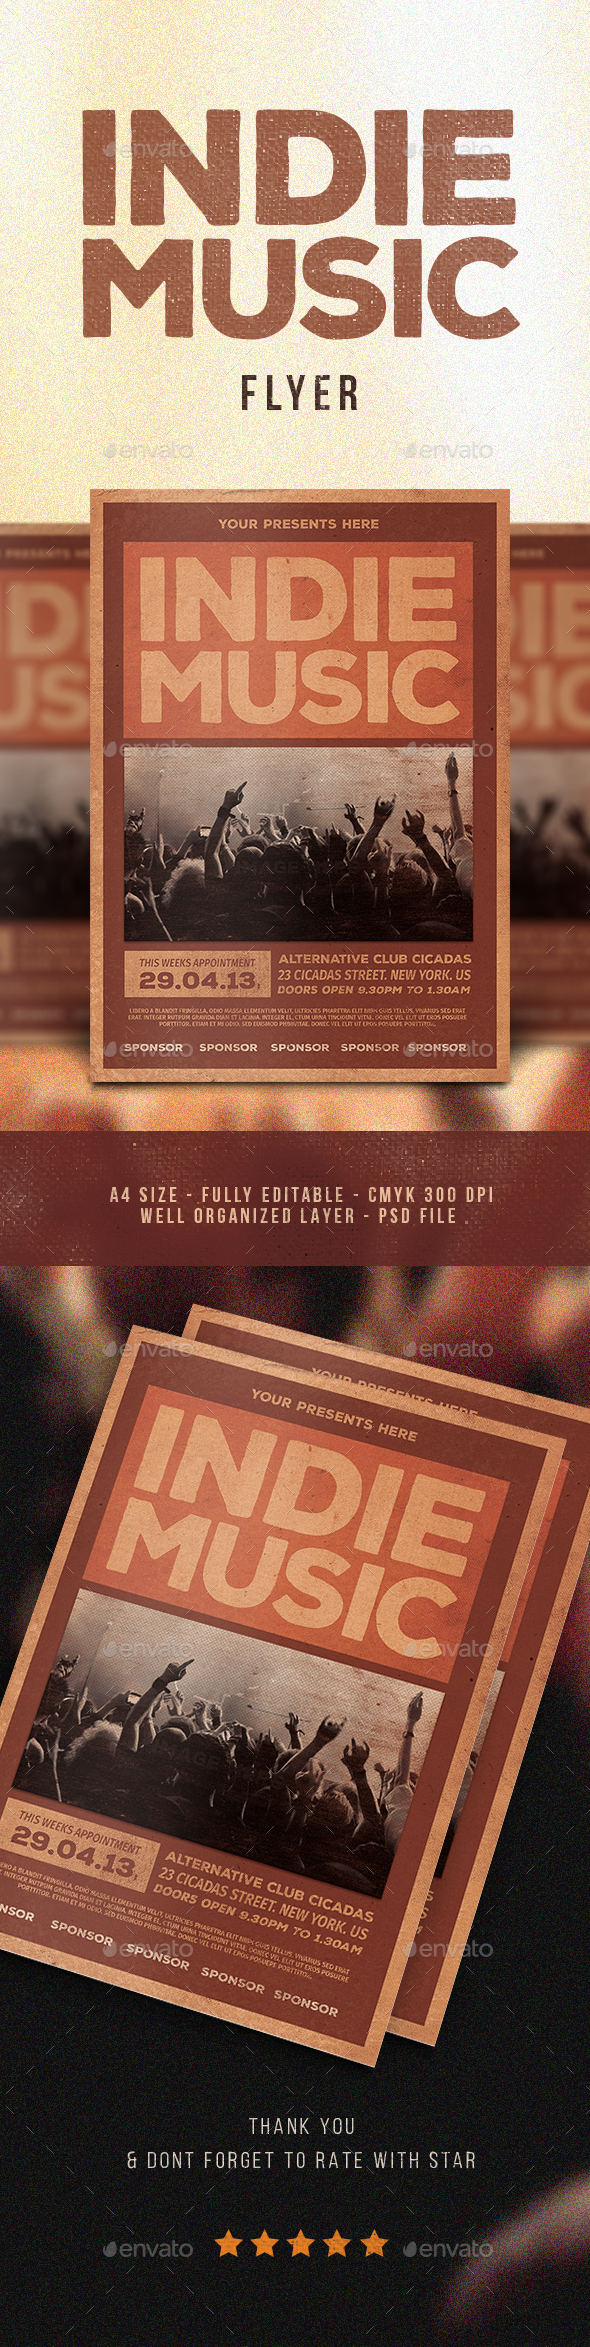 Indie Music Flyer - Flyers Print Templates